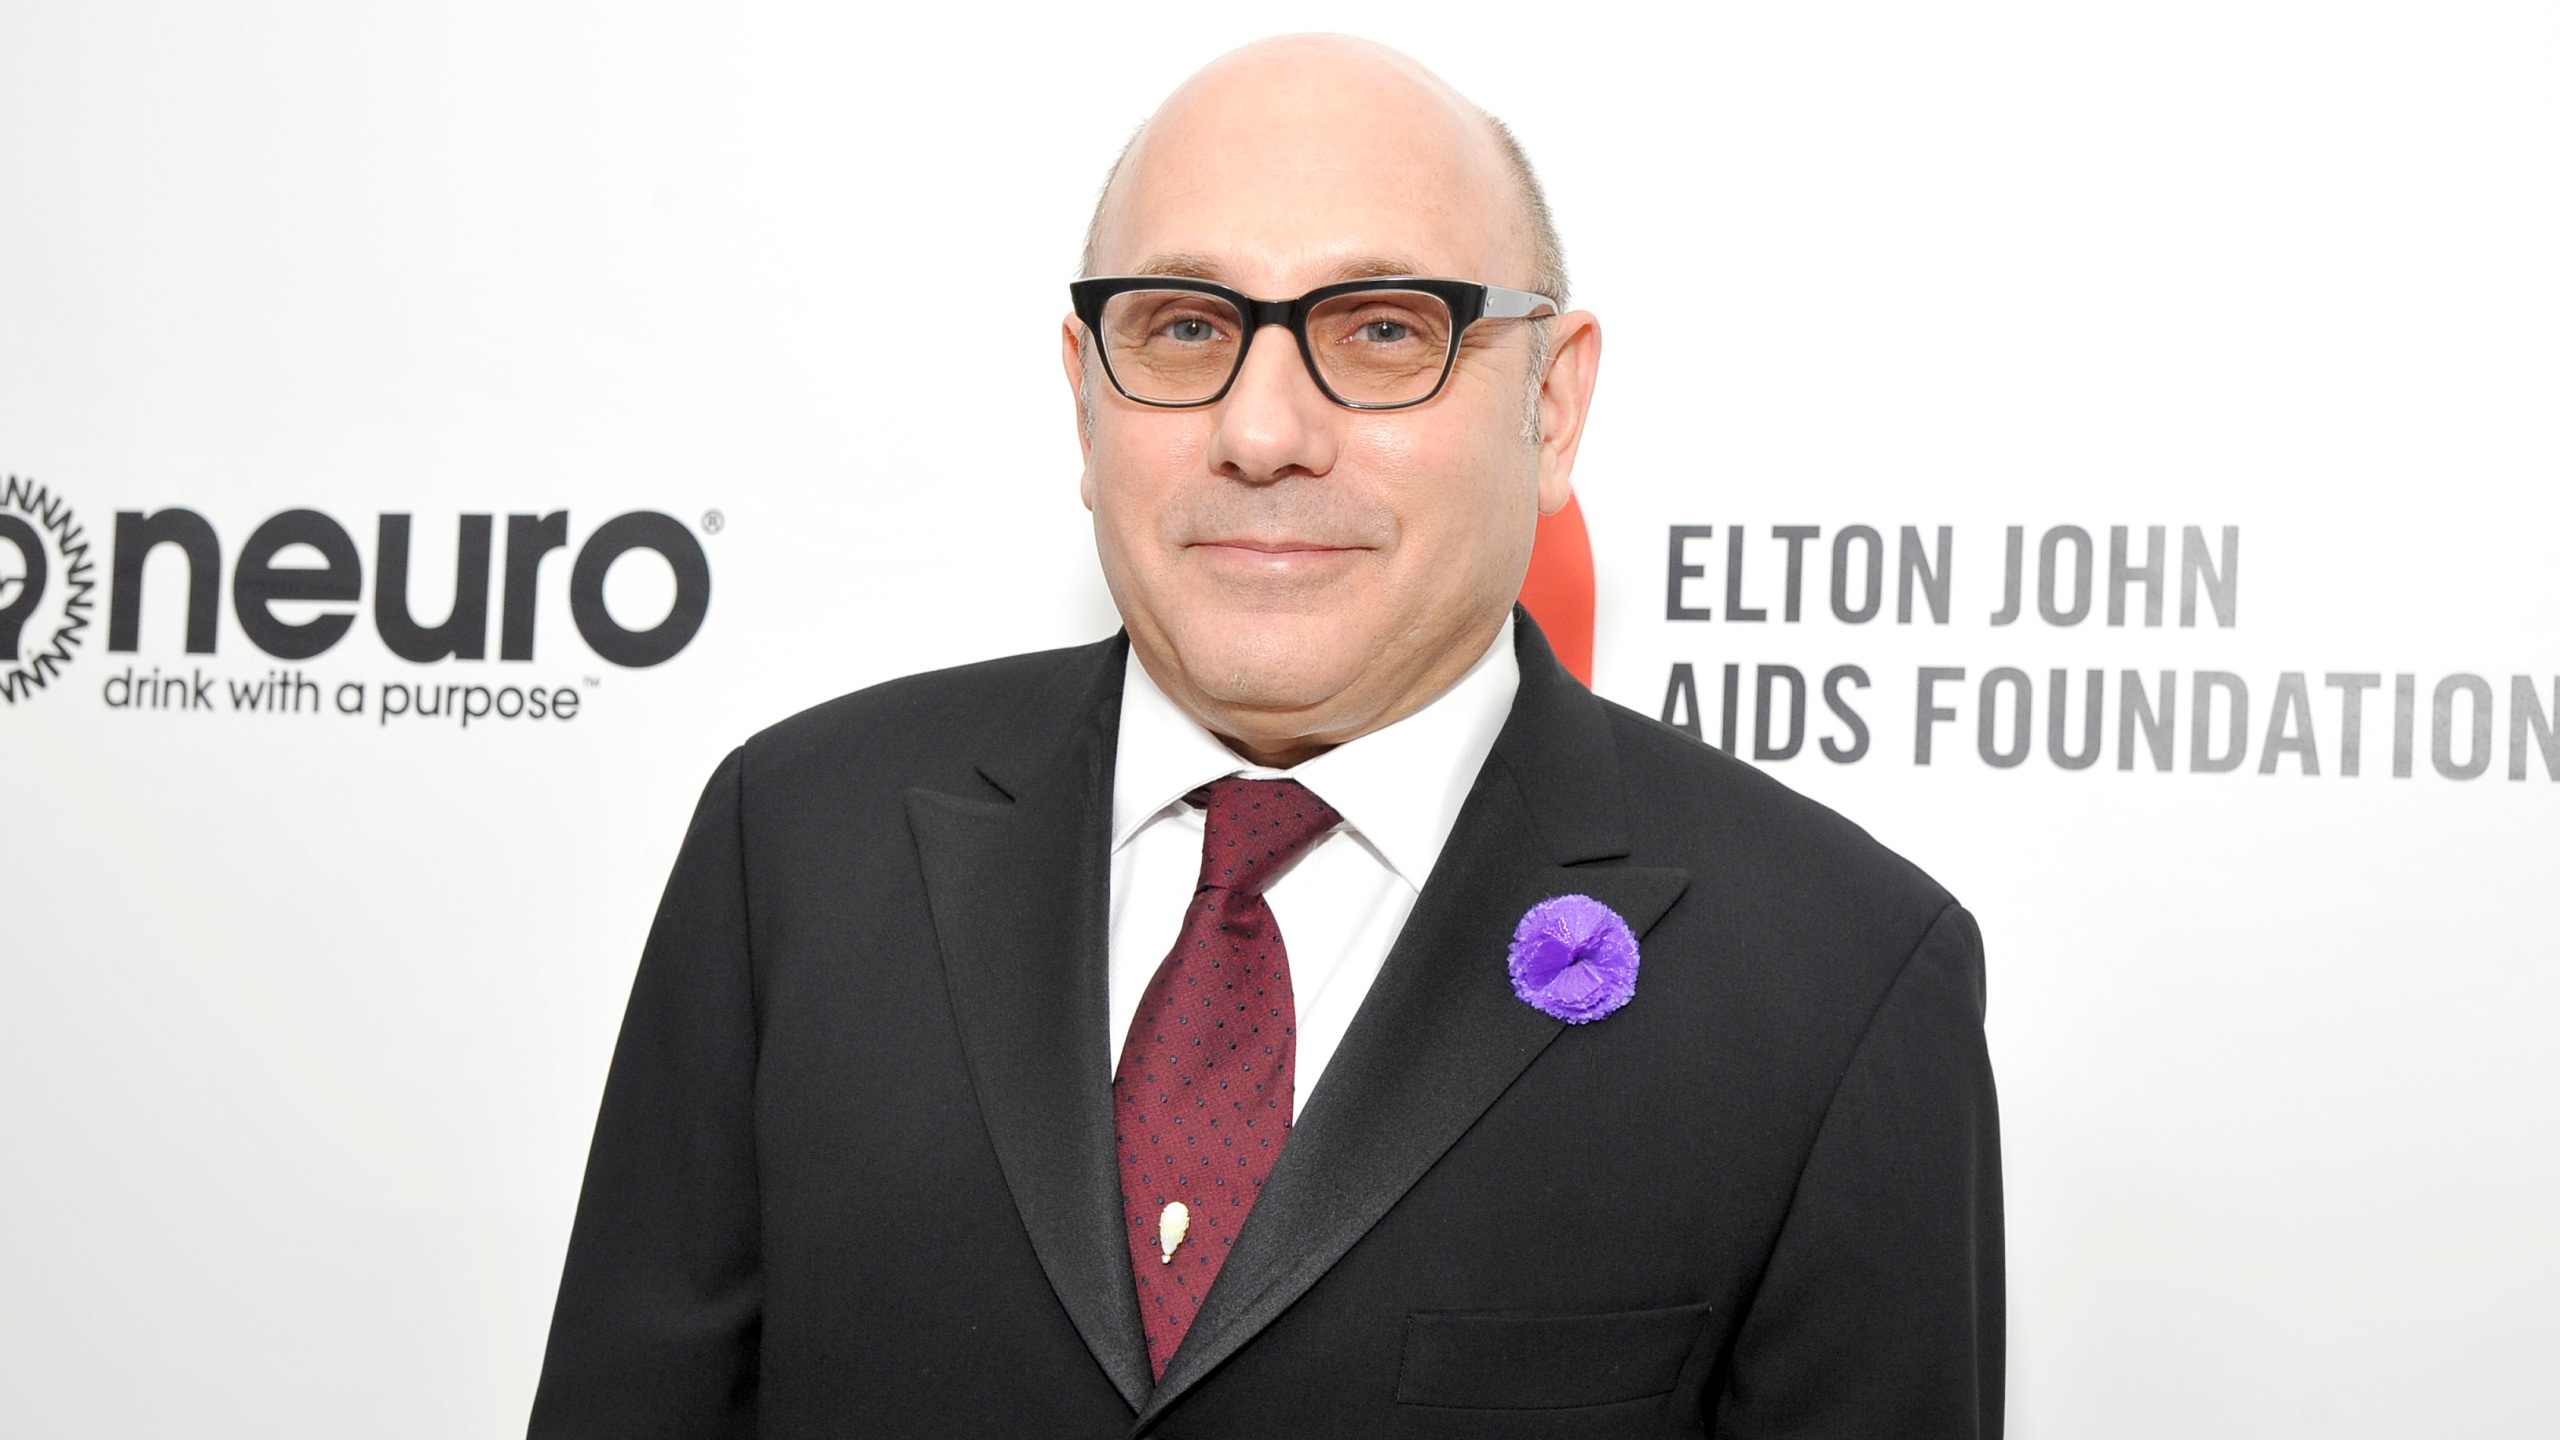 Willie Garson attends Neuro Brands Presenting Sponsor At The Elton John AIDS Foundation's Academy Awards Viewing Party on Feb. 9, 2020, in West Hollywood, California. (John Sciulli/Getty Images for Neuro Brands)